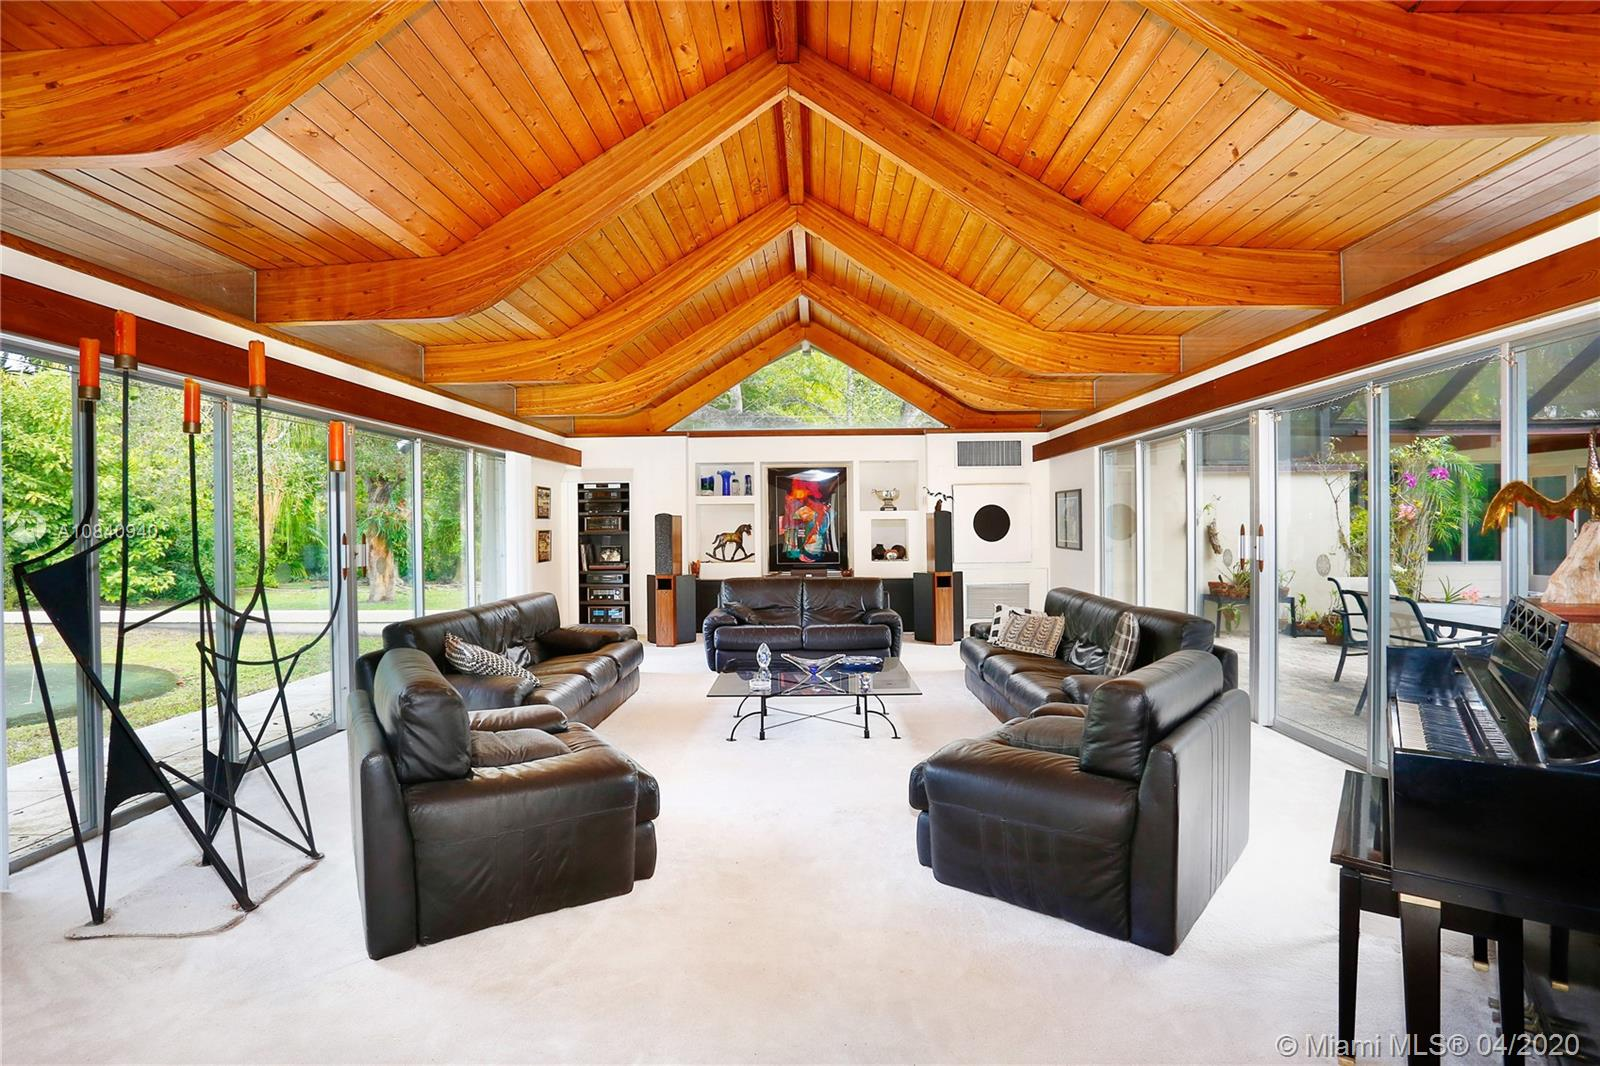 11313 SW 69th Ct, Pinecrest, Florida 33156, 6 Bedrooms Bedrooms, ,5 BathroomsBathrooms,Residential,For Sale,11313 SW 69th Ct,A10840940